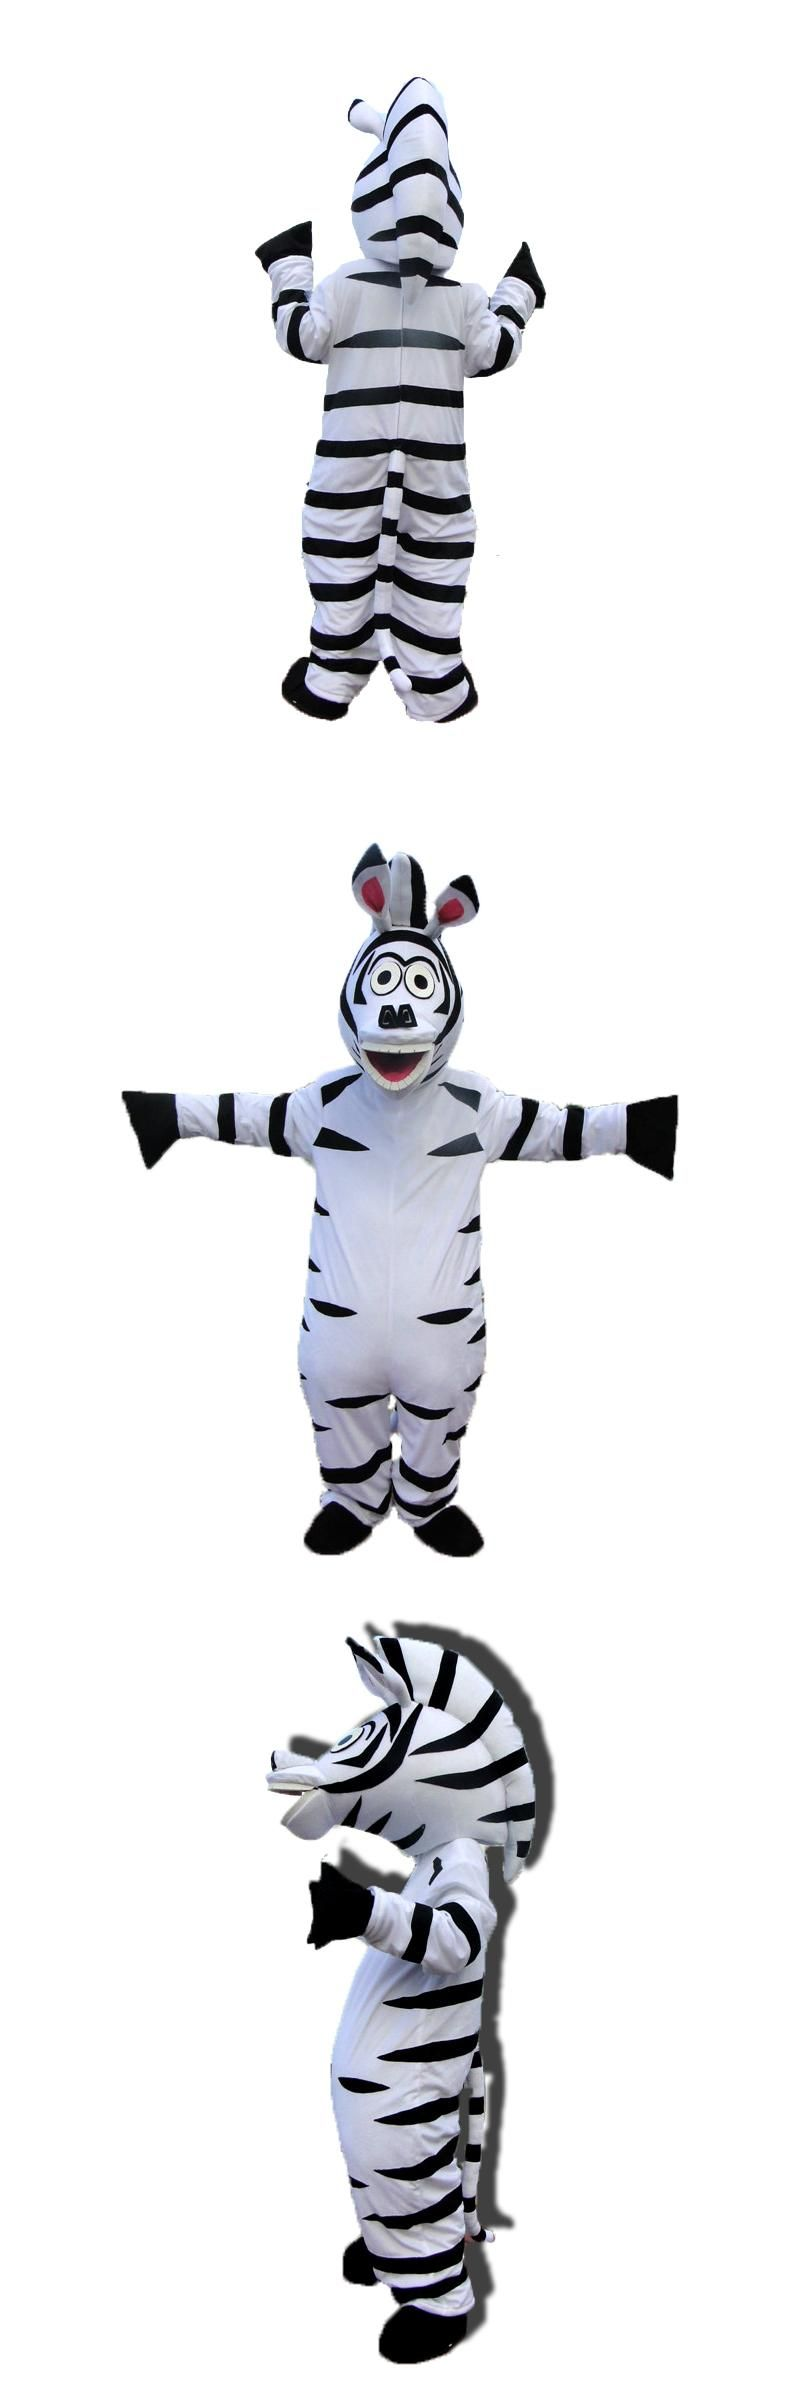 High quality Madagascar Zebra Mascot Costume Madagascar Marty Mascot Costume With Fan u0026 Helmet Free Shipping  sc 1 st  Pinterest & High quality Madagascar Zebra Mascot Costume Madagascar Marty Mascot ...